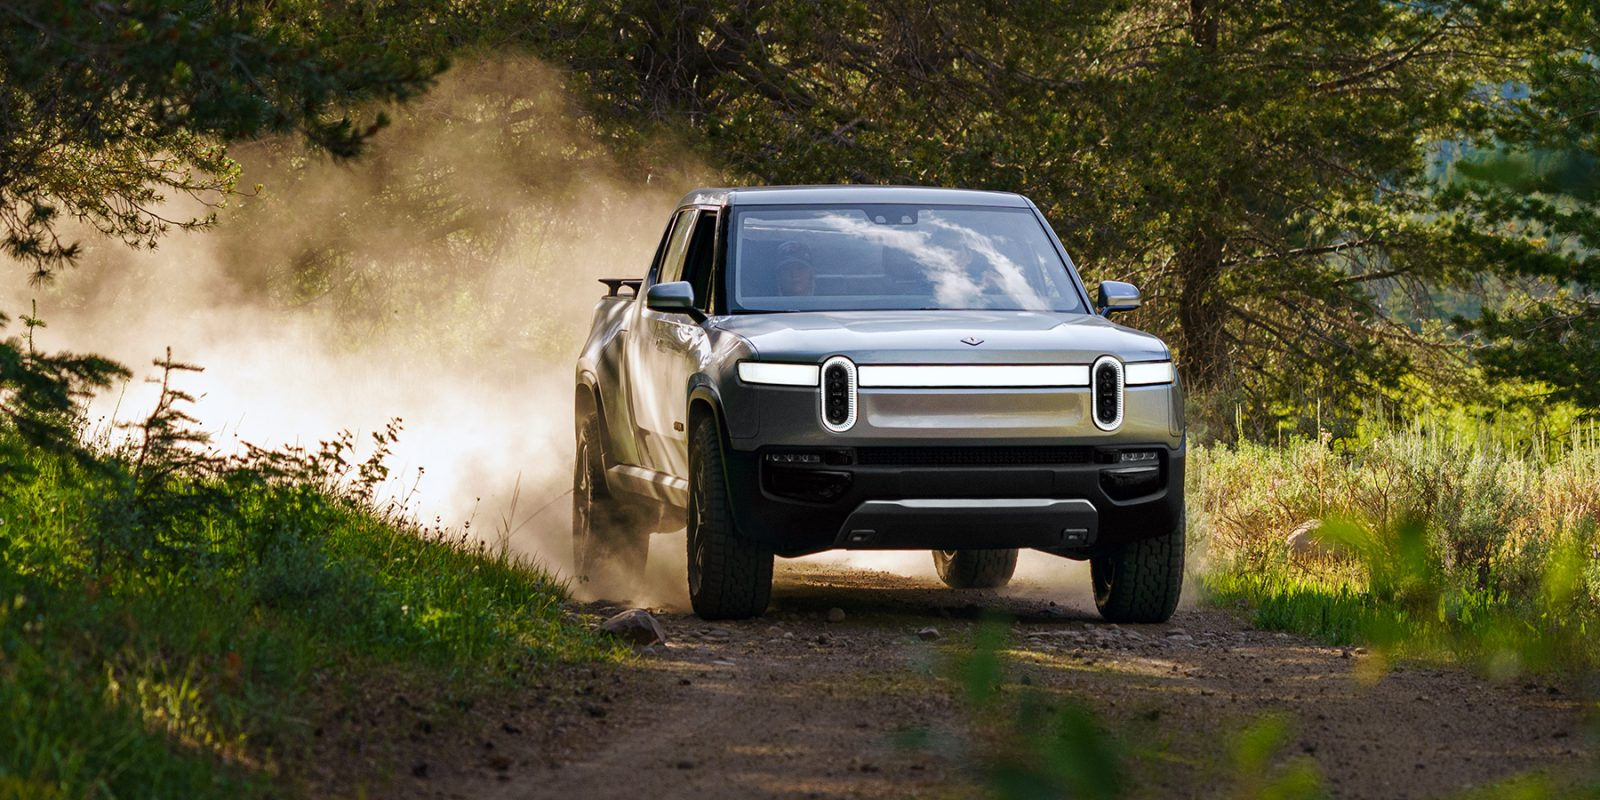 Rivian's quad-motor torque vectoring sets high bar for Tesla Cybertruck